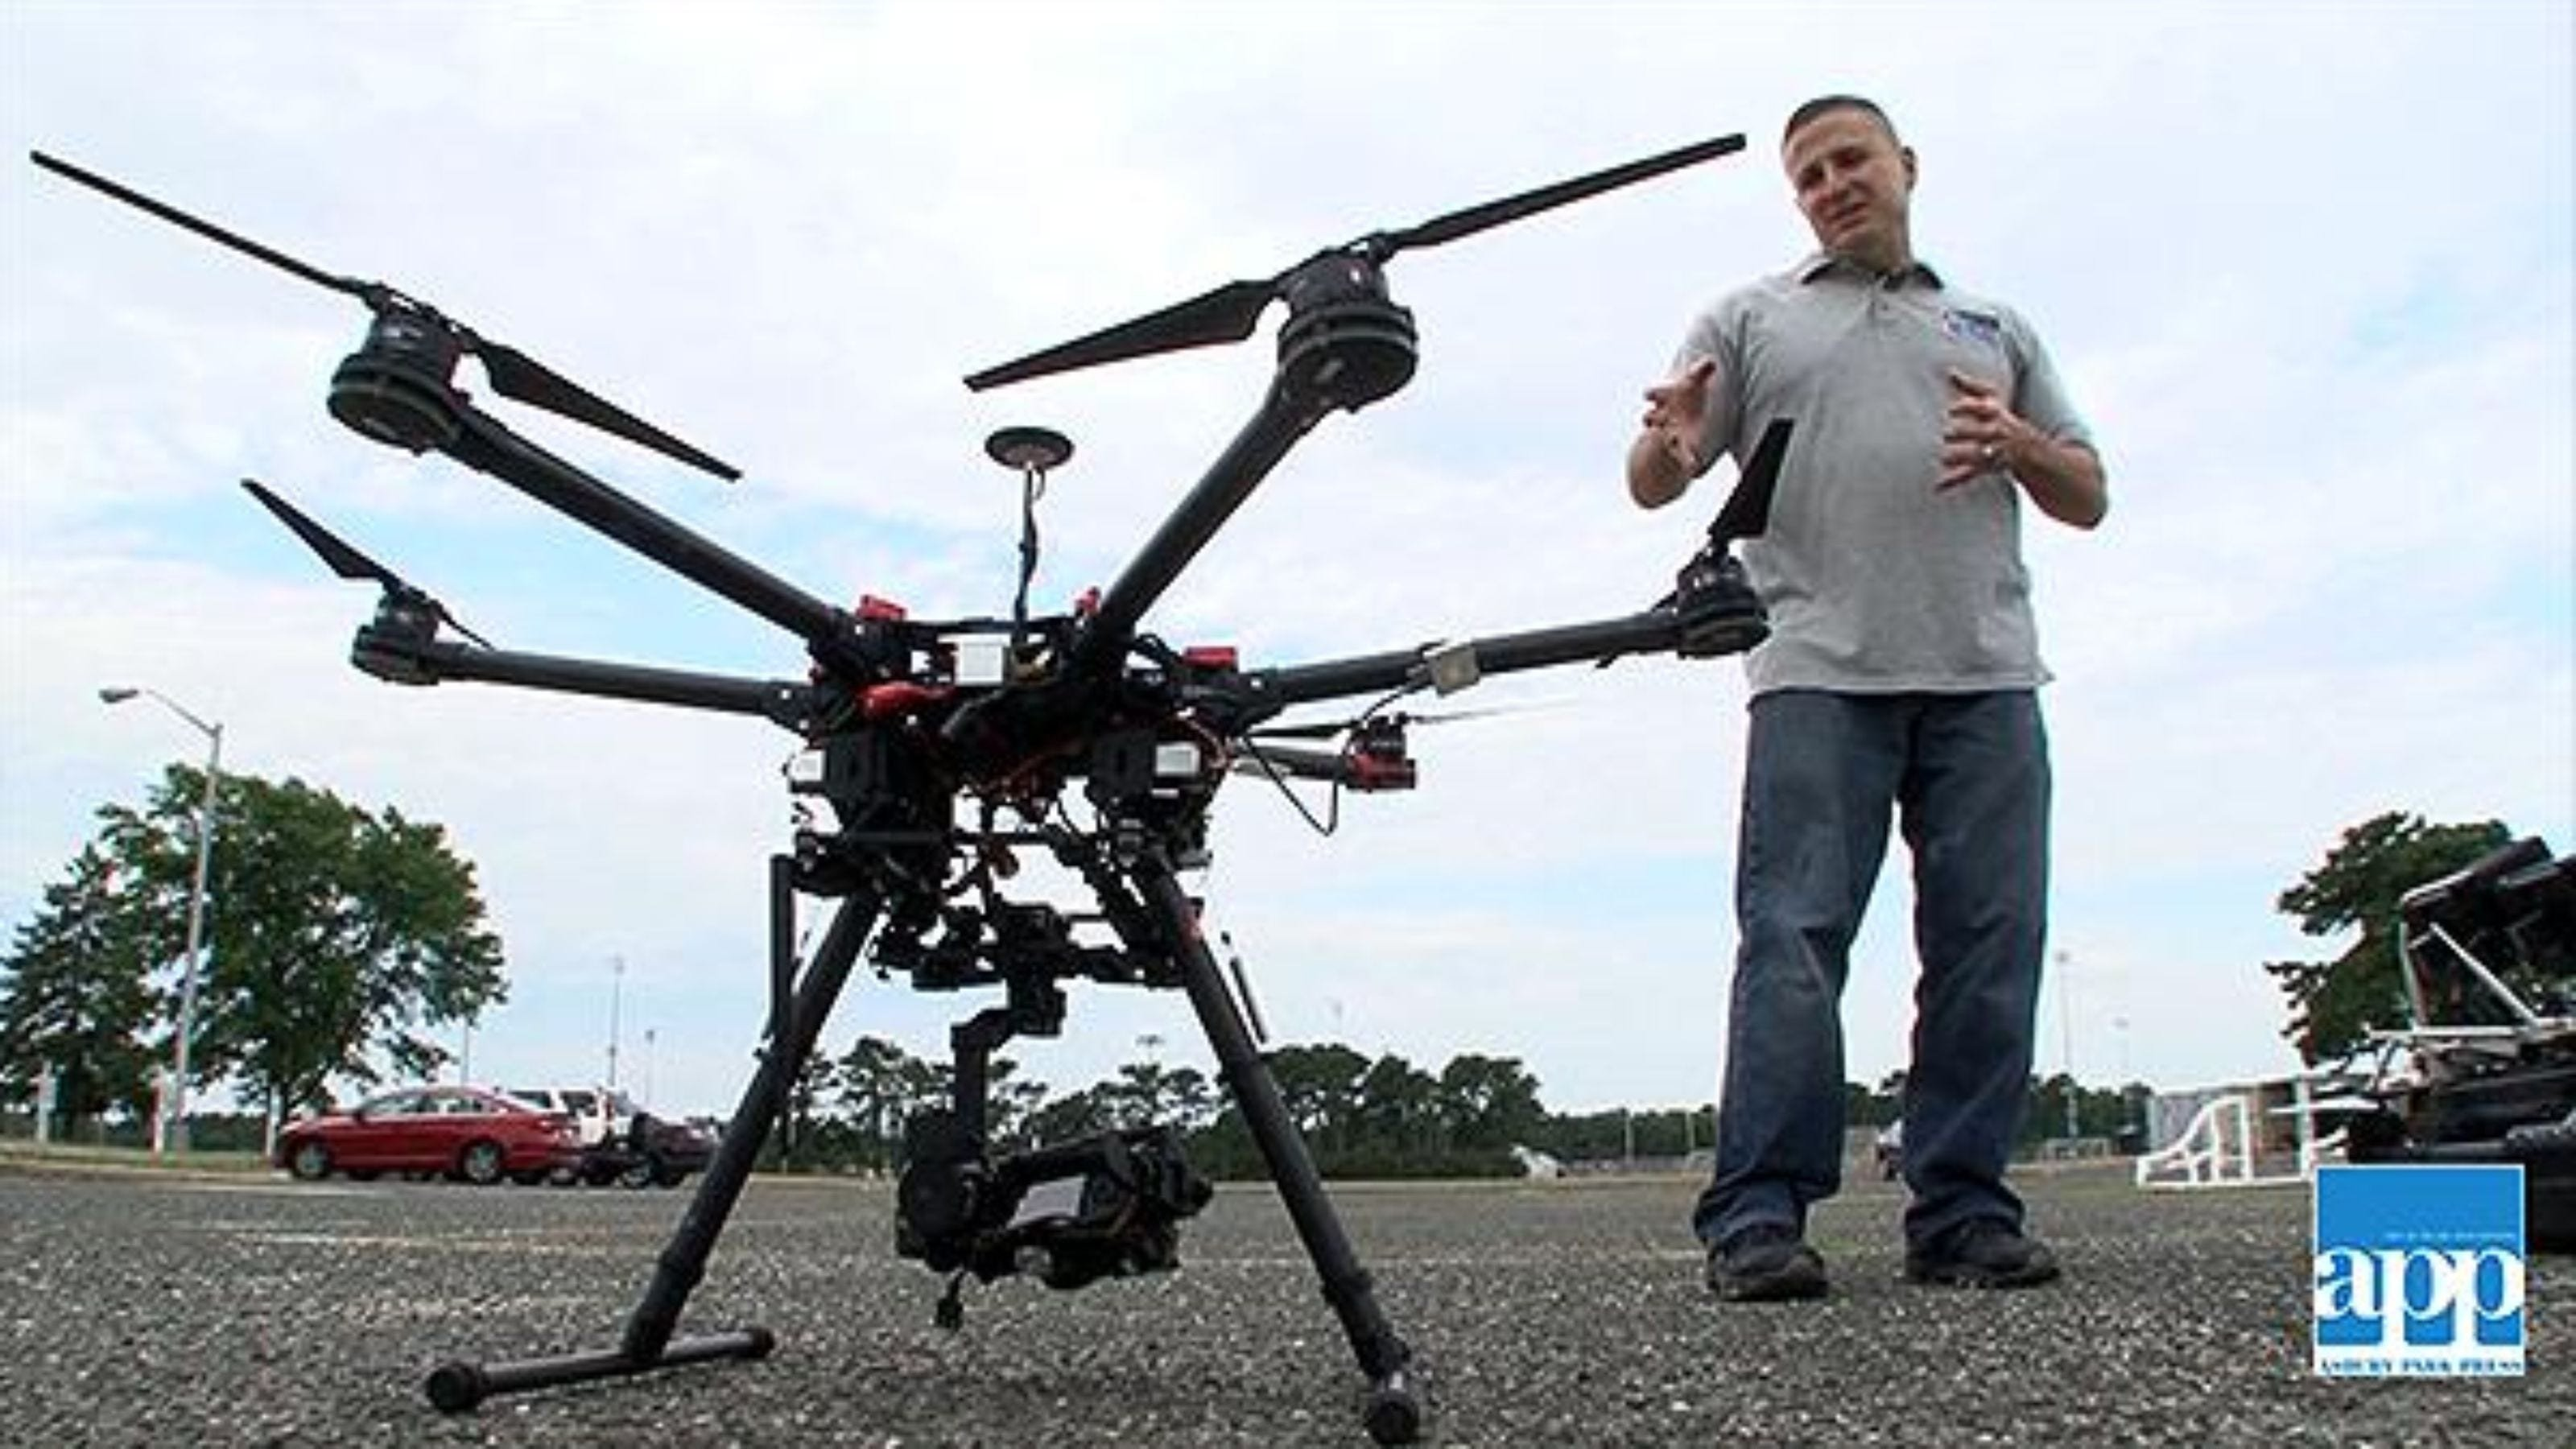 Drone Photography Business Plan Drone Photography Business Taking Off